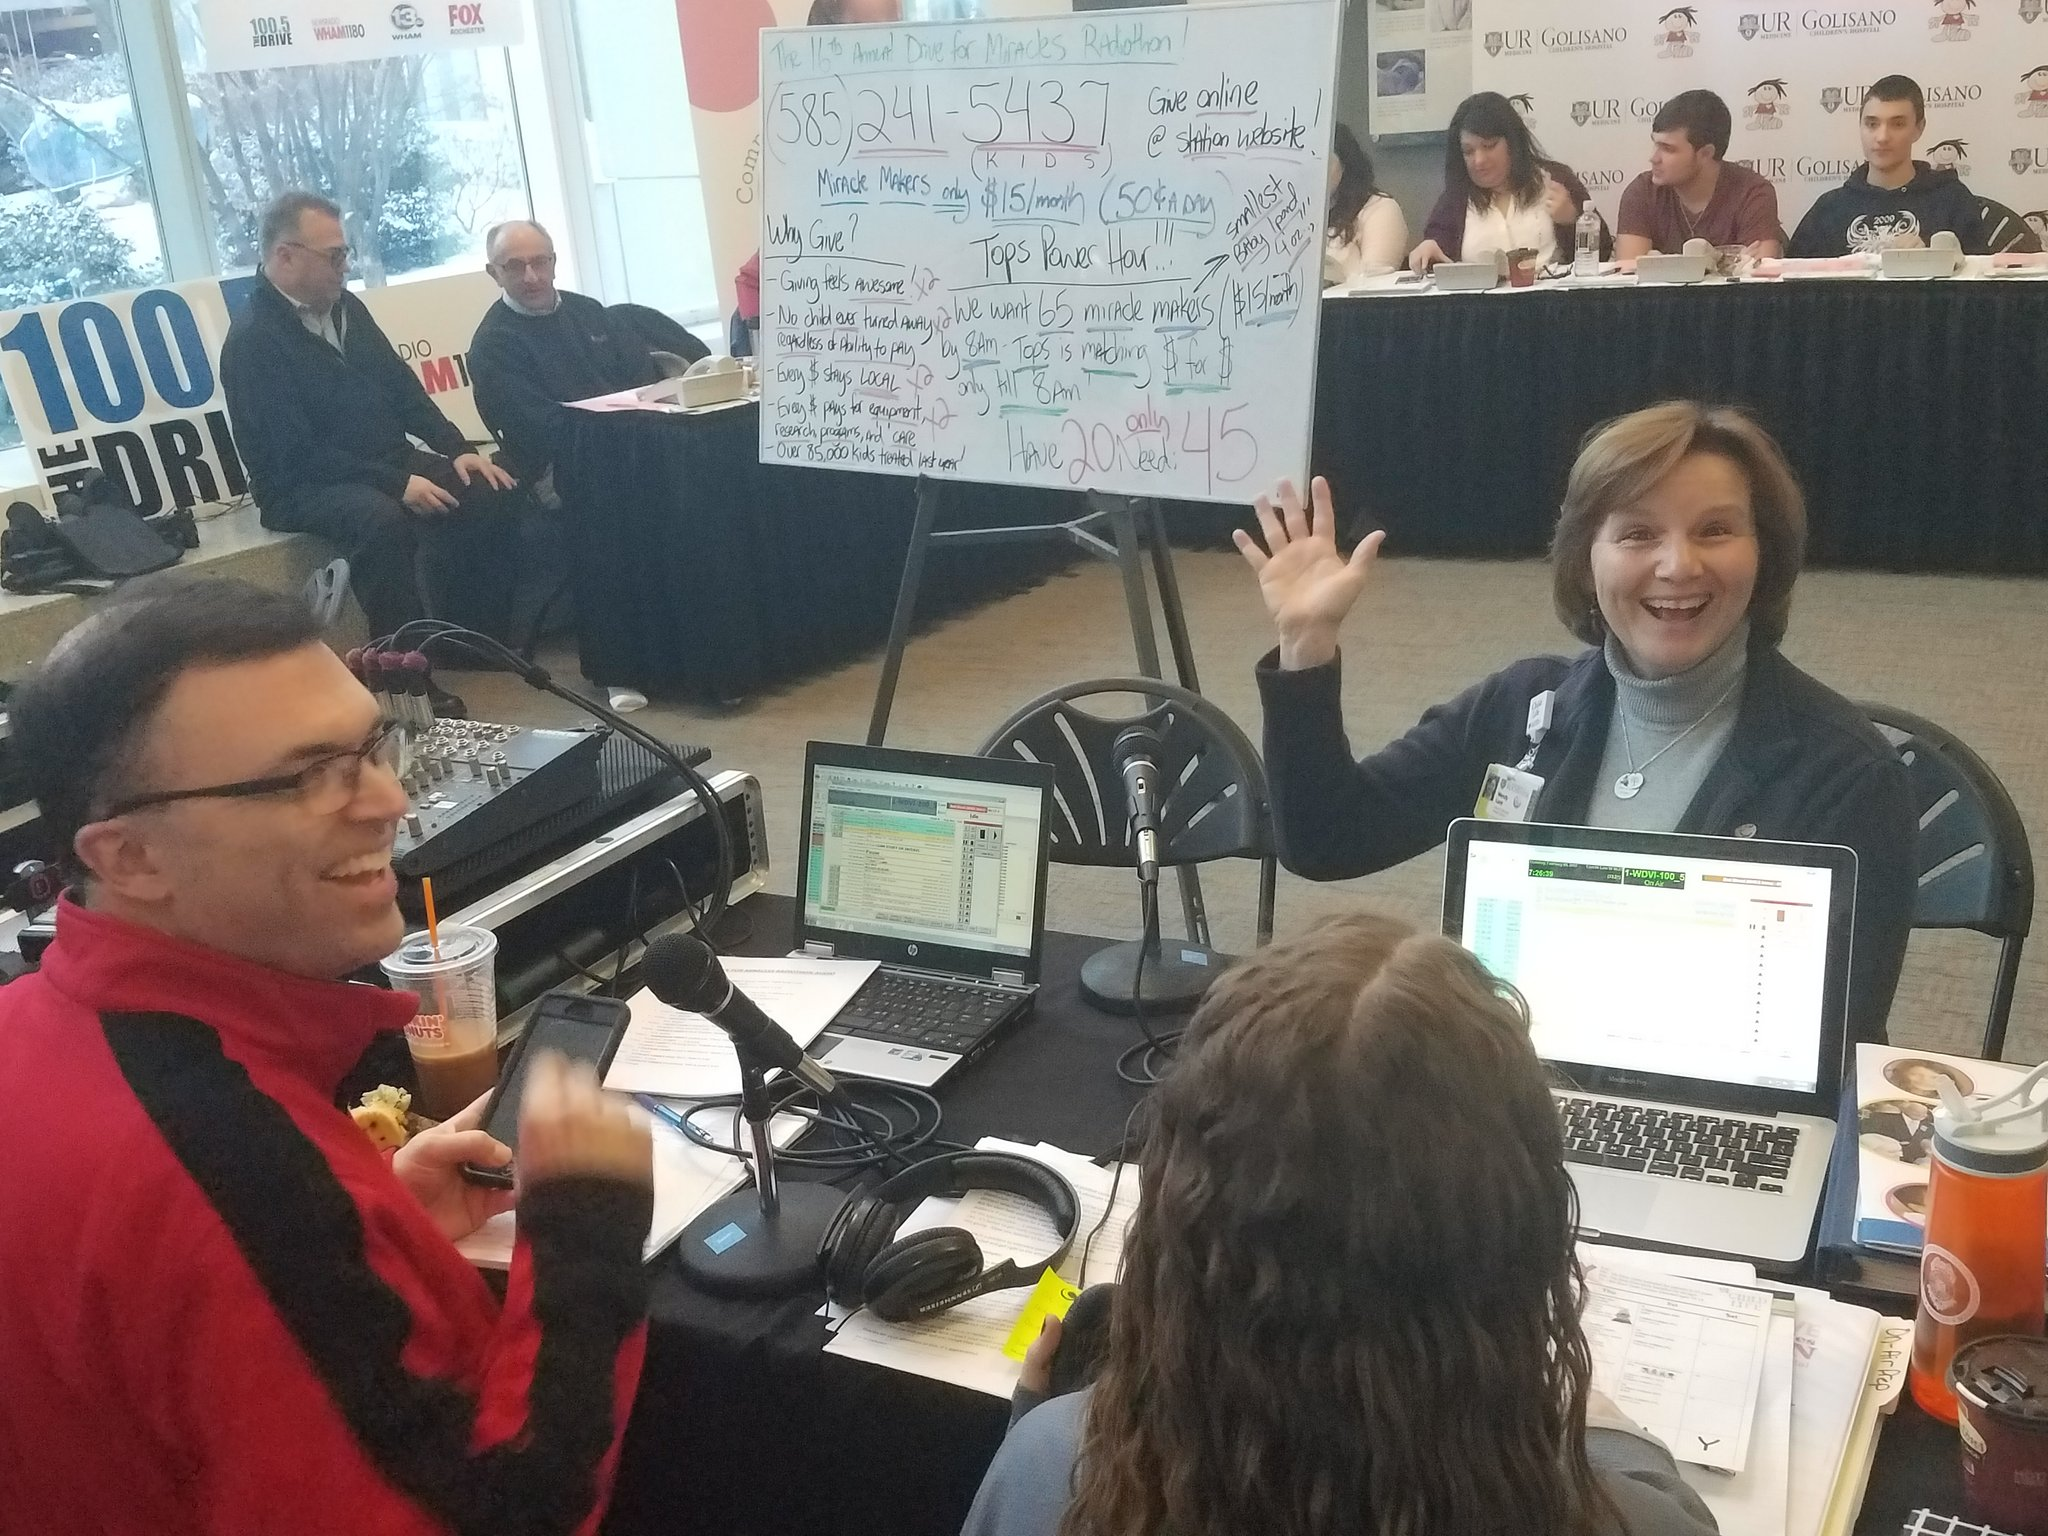 On @1005THEDRIVE right now: Child Life's Wendy Lane! Tune in - still half an hour left in the @TopsMarkets donation MATCH! #DriveForMiracles https://t.co/SRLxPFwULX